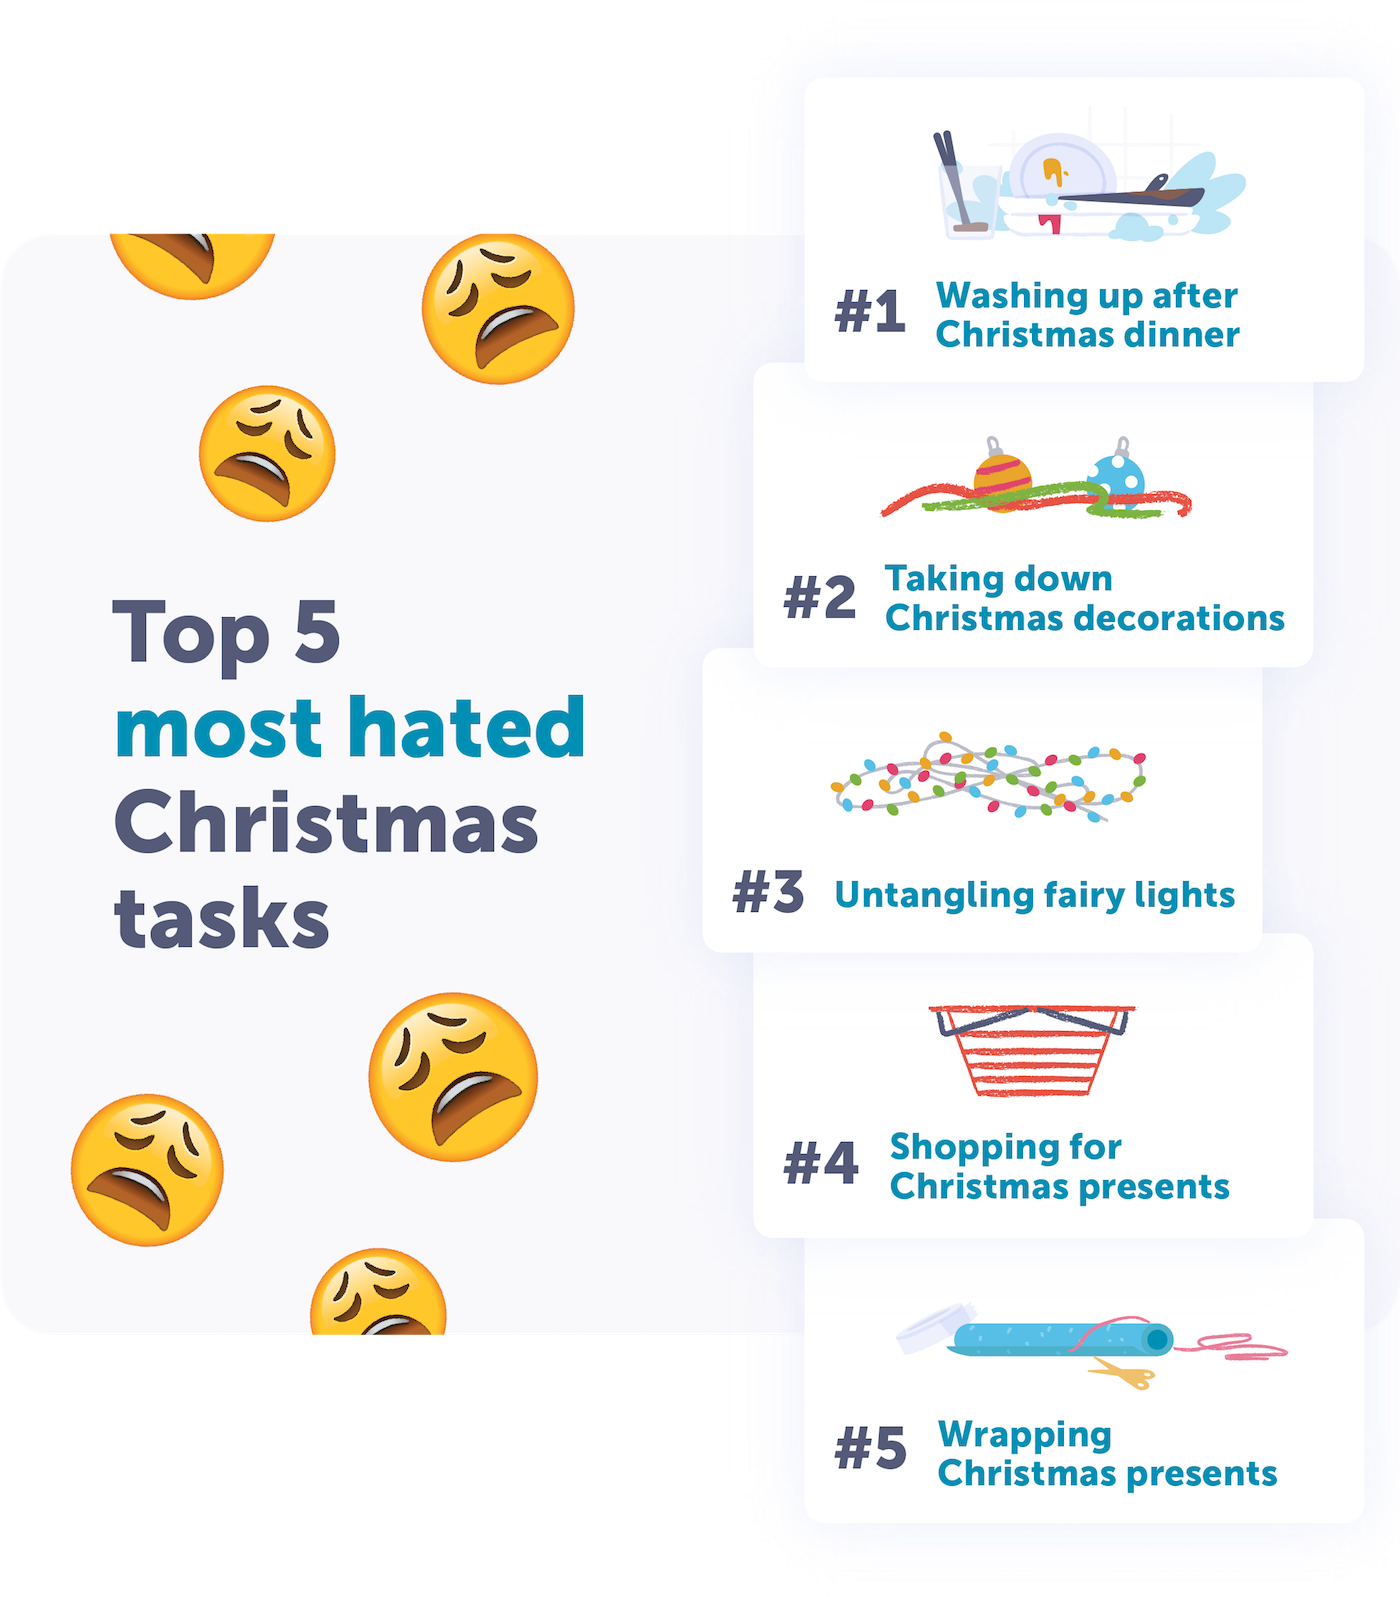 UK top 5 most hated Christmas tasks | Airtasker